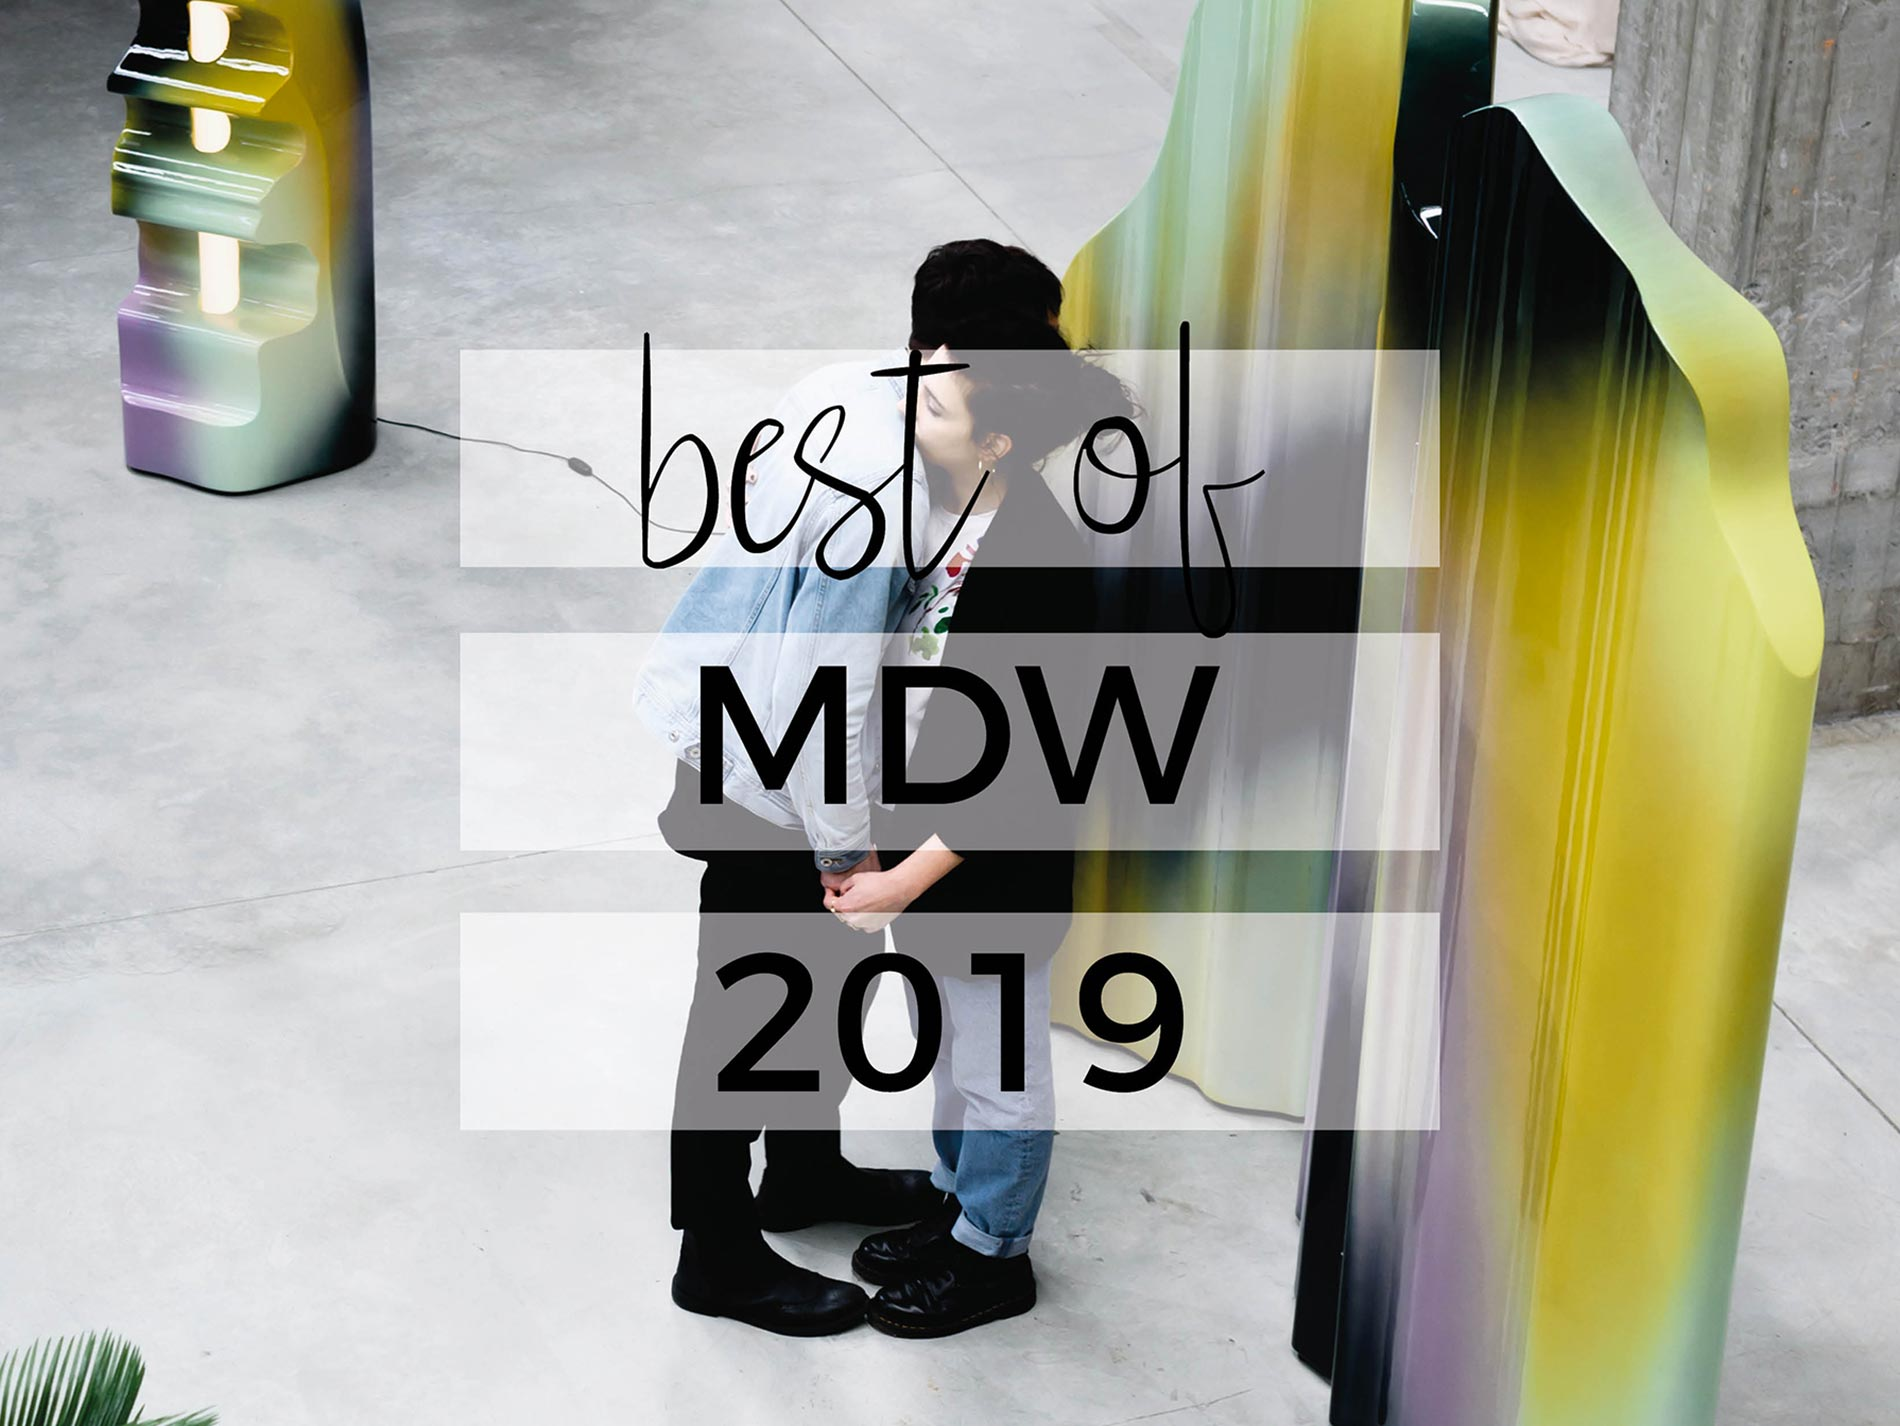 milano design week 2019 highlights